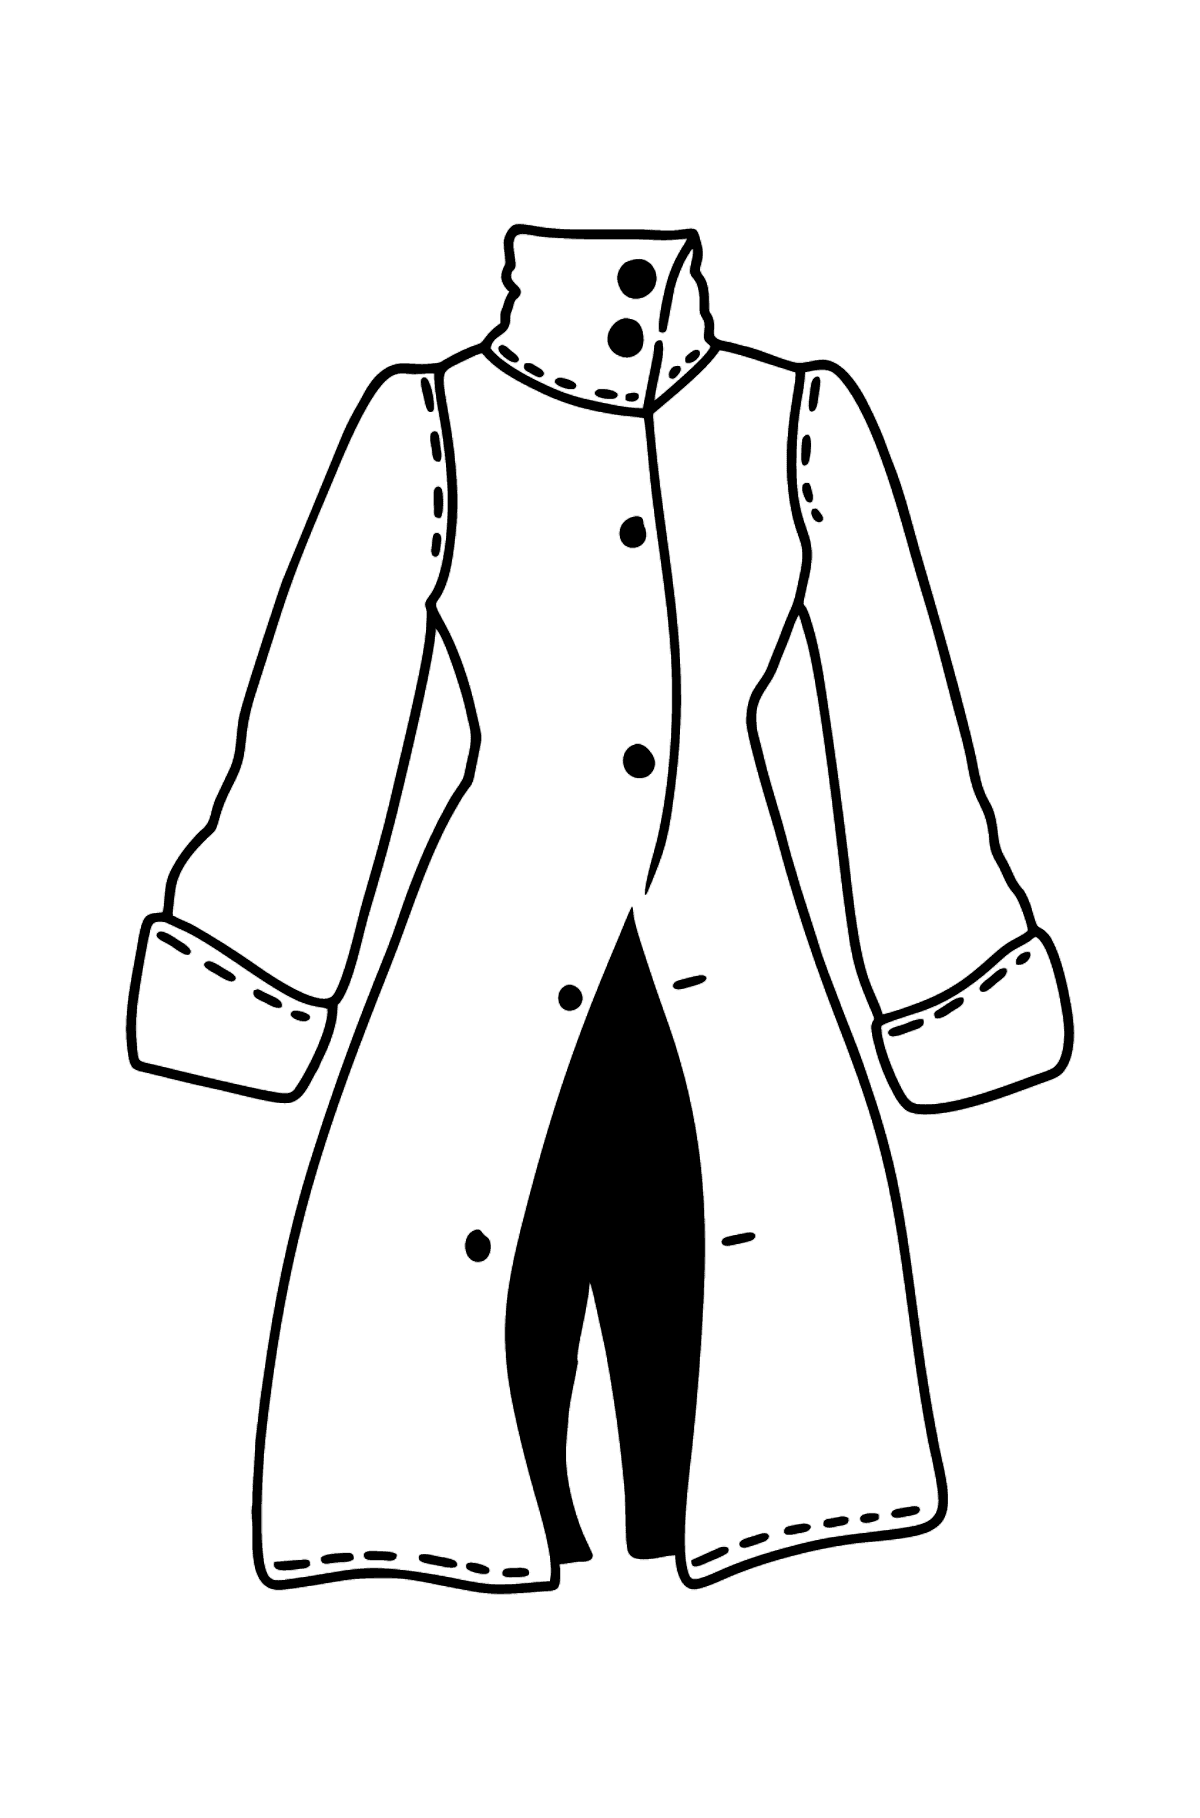 Coat coloring page - Coloring Pages for Kids